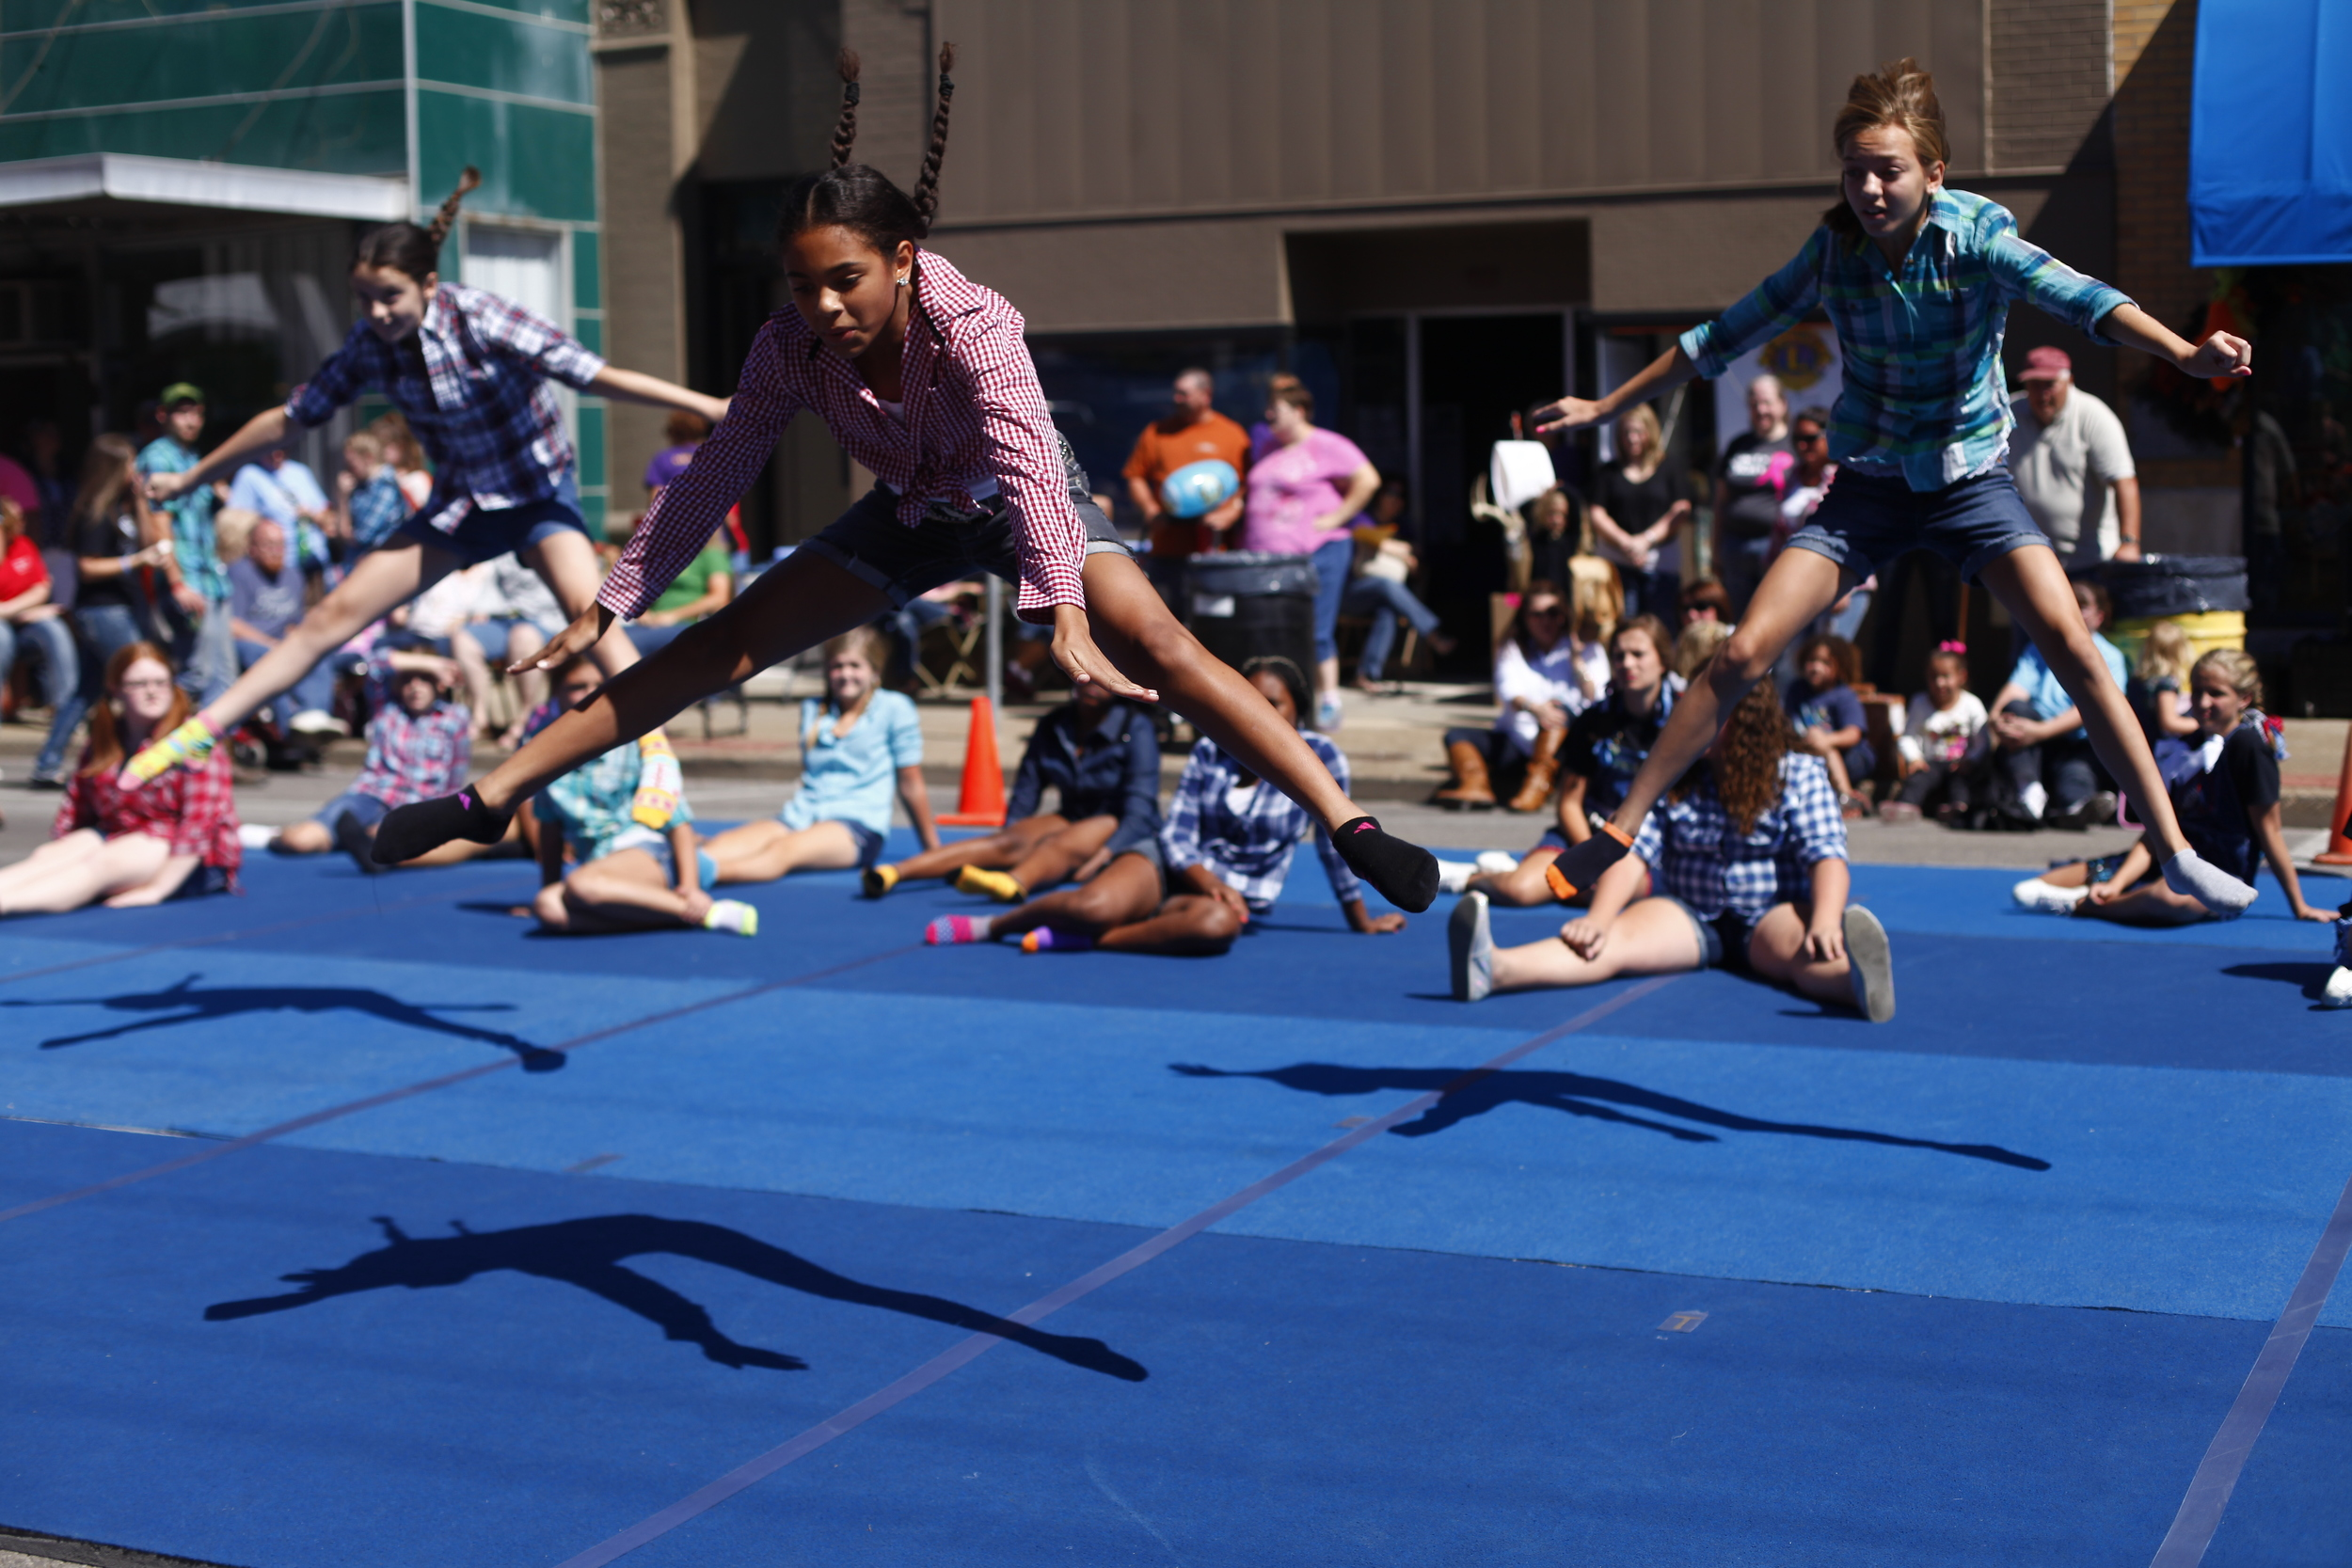 Members of the Union County High School Dance Team perform toe touches during a jump off on Saturday.